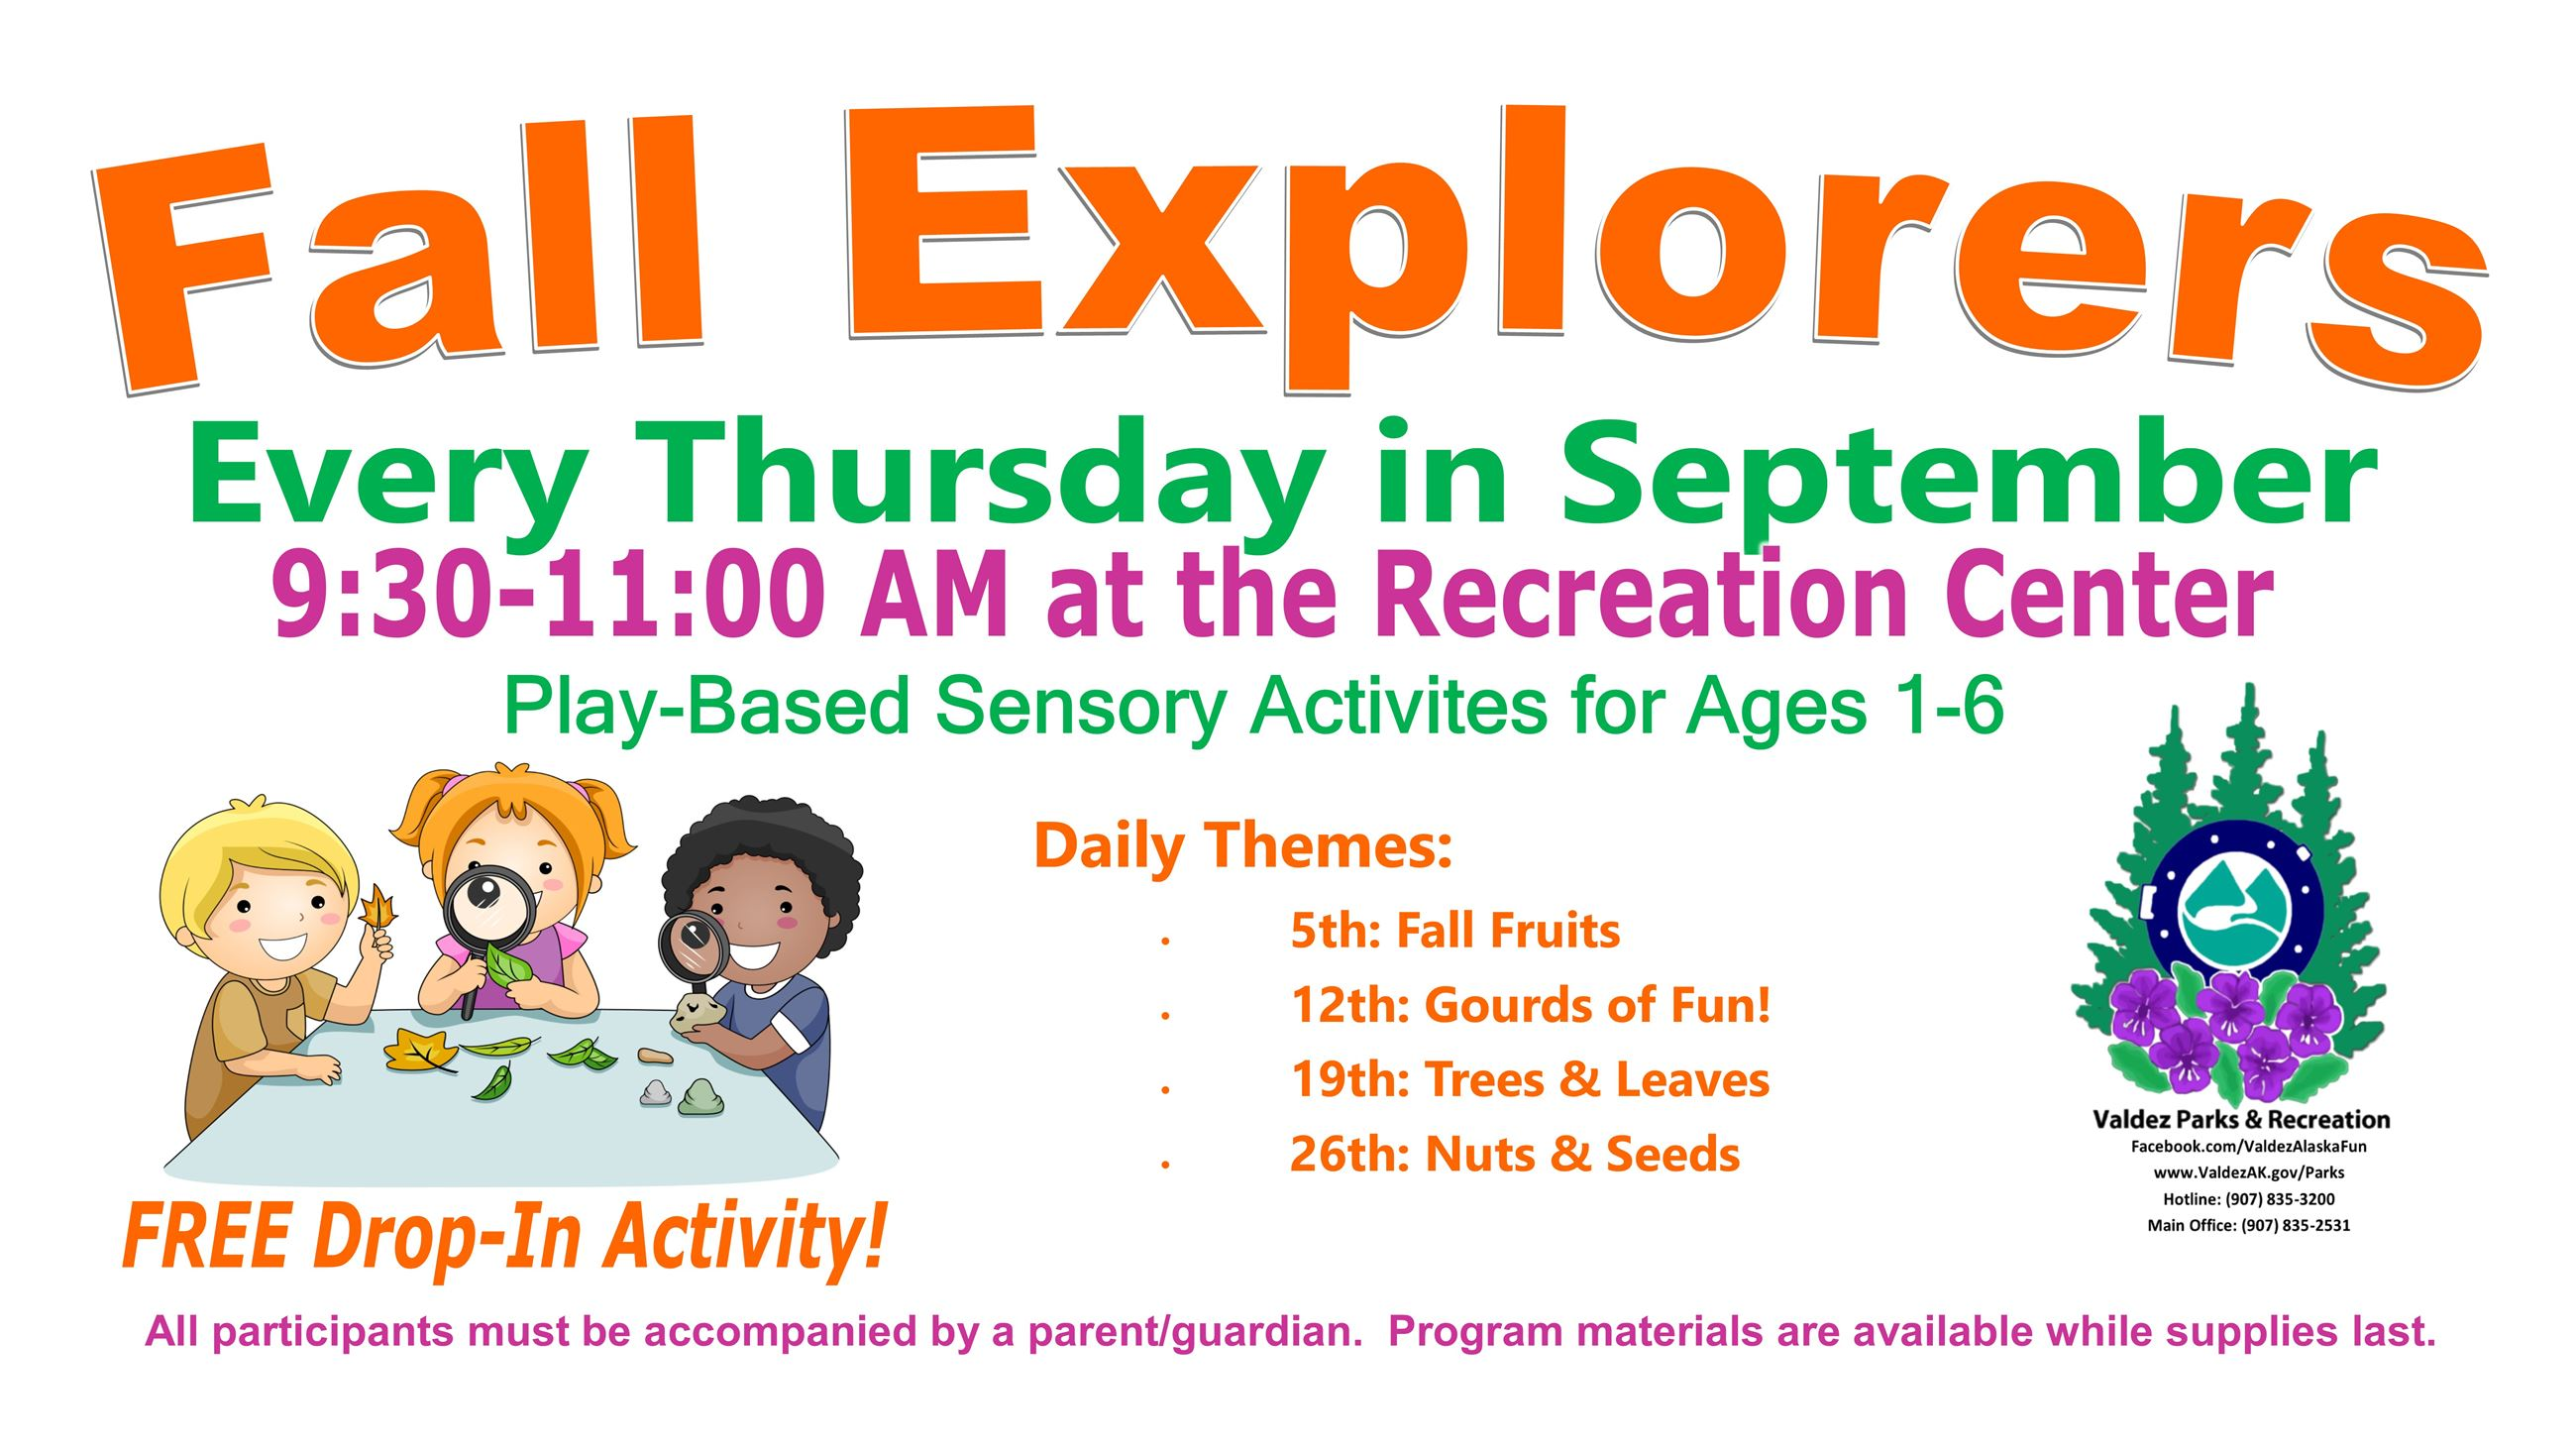 Fall Explorers_Thursdays Sept 2019